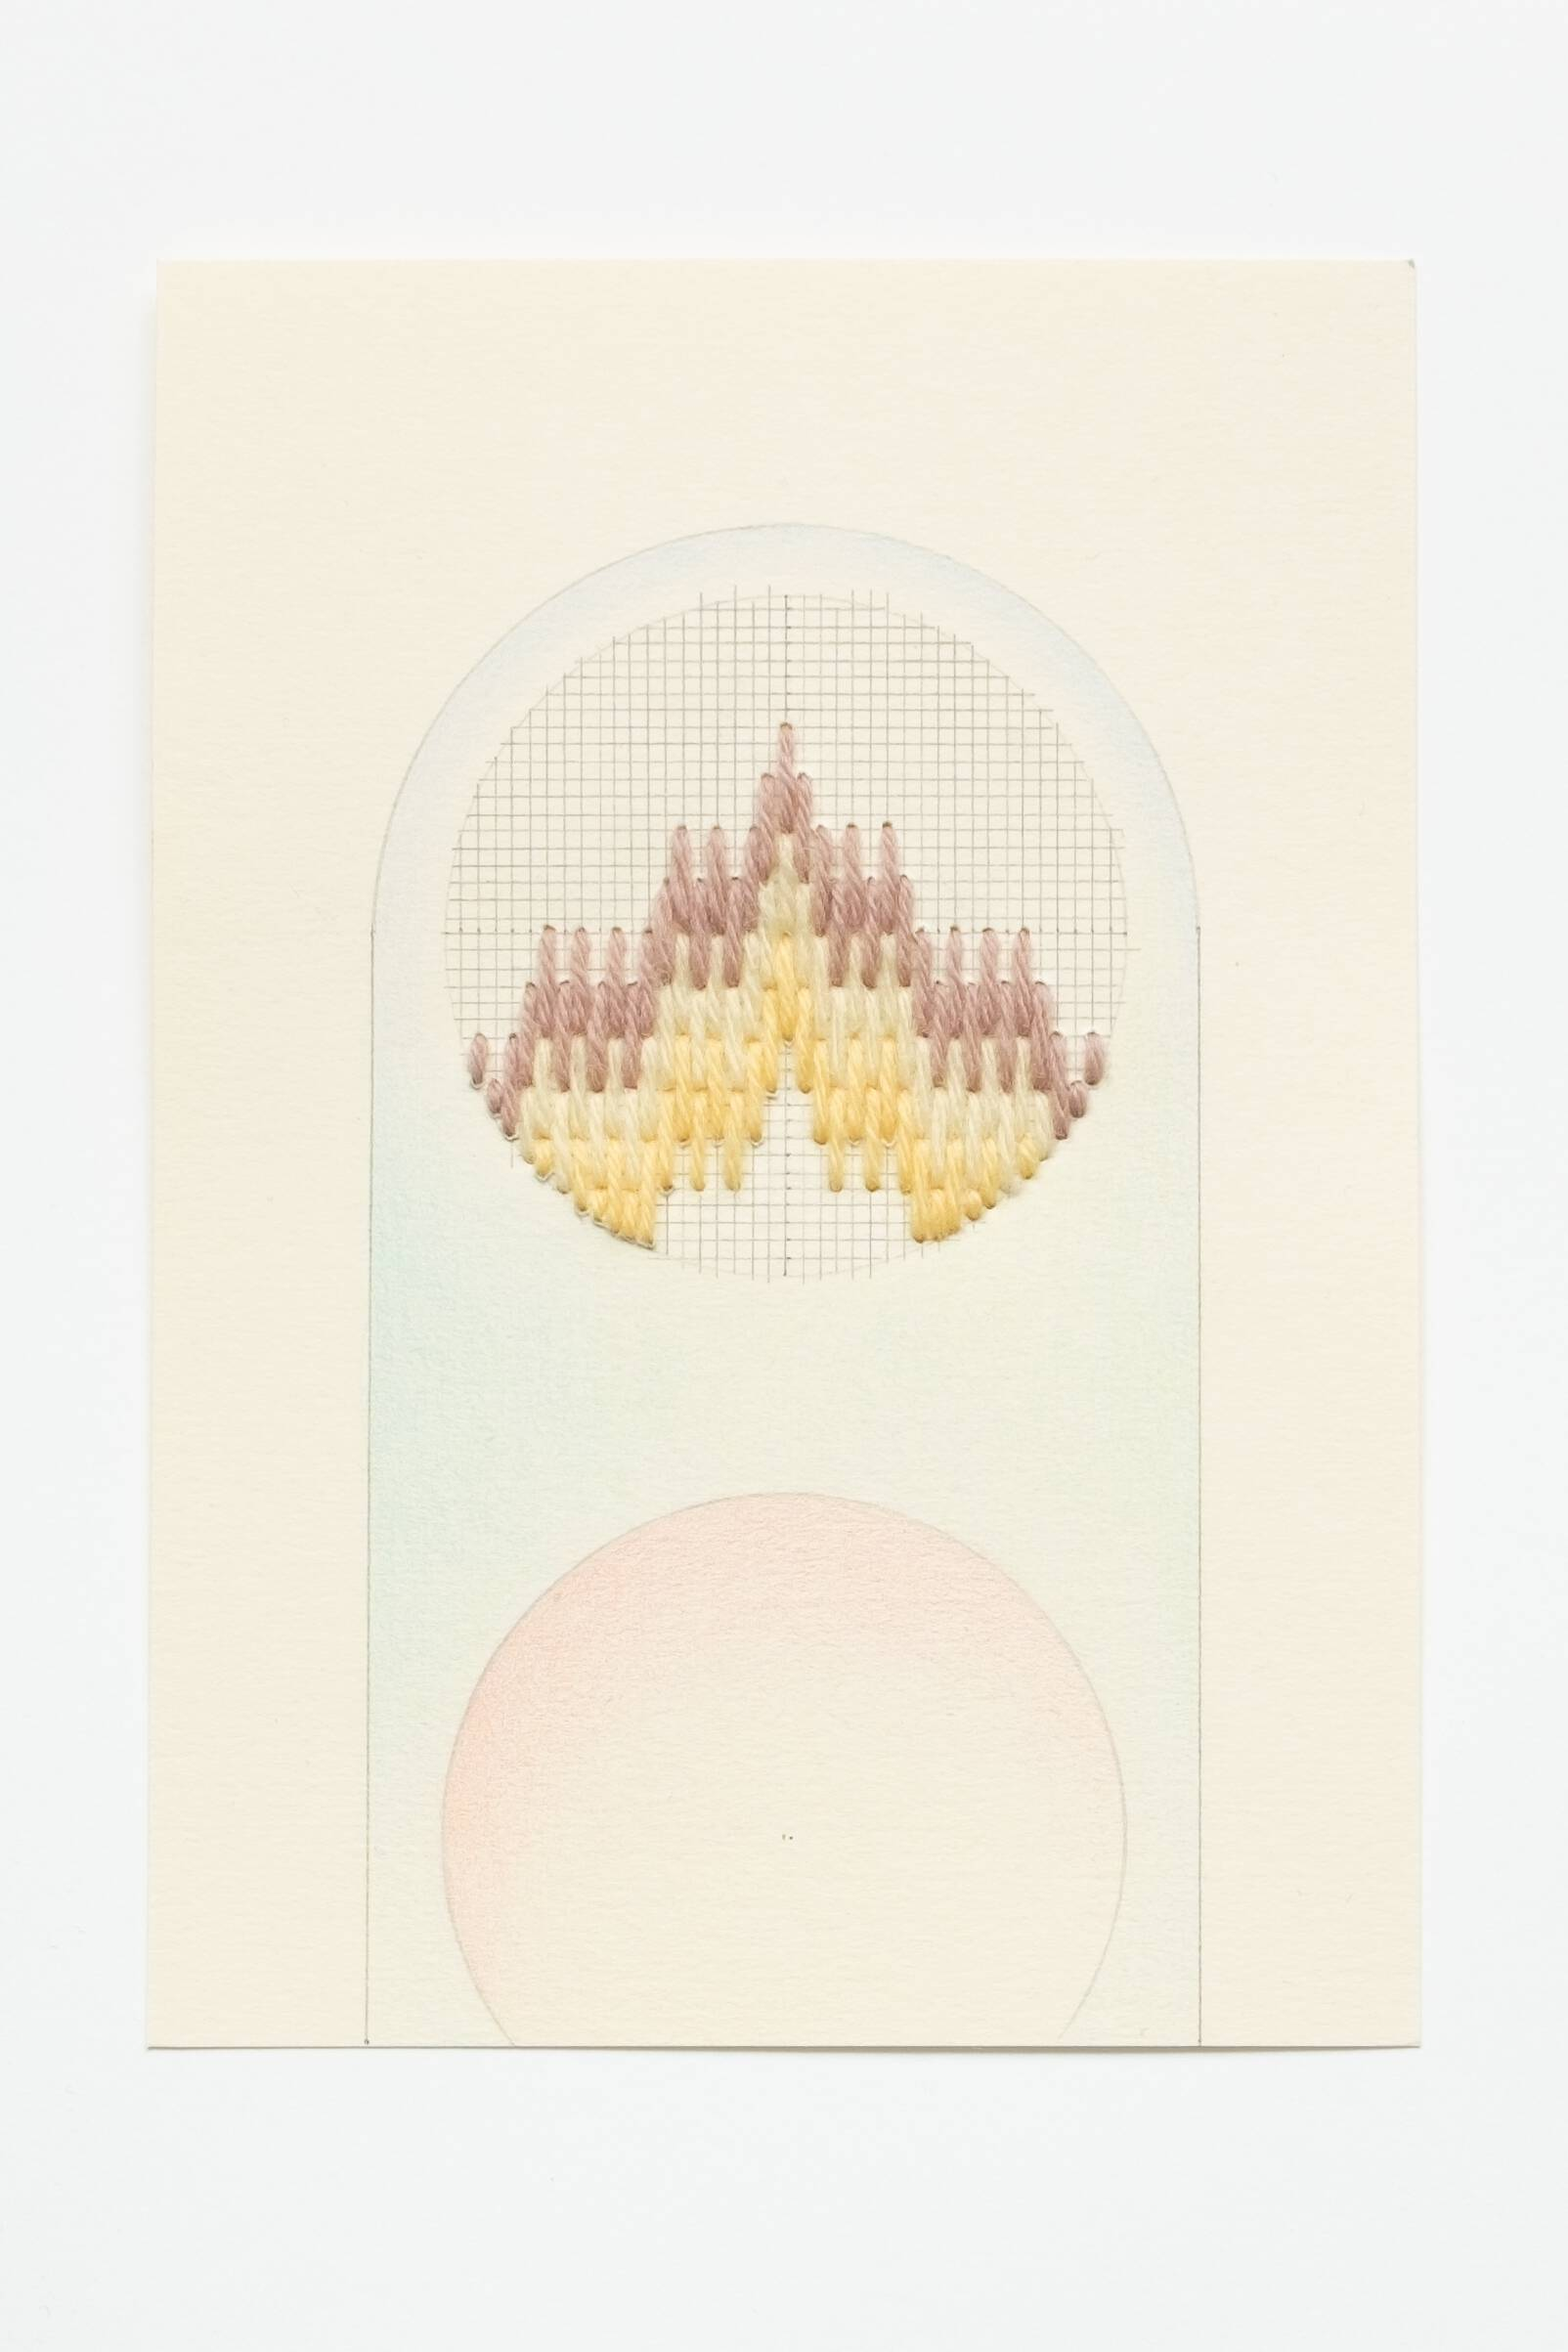 Bargello circle [brown-yellow on yellow], Hand-embroidered wool, pencil and colored pencil on paper, 2020